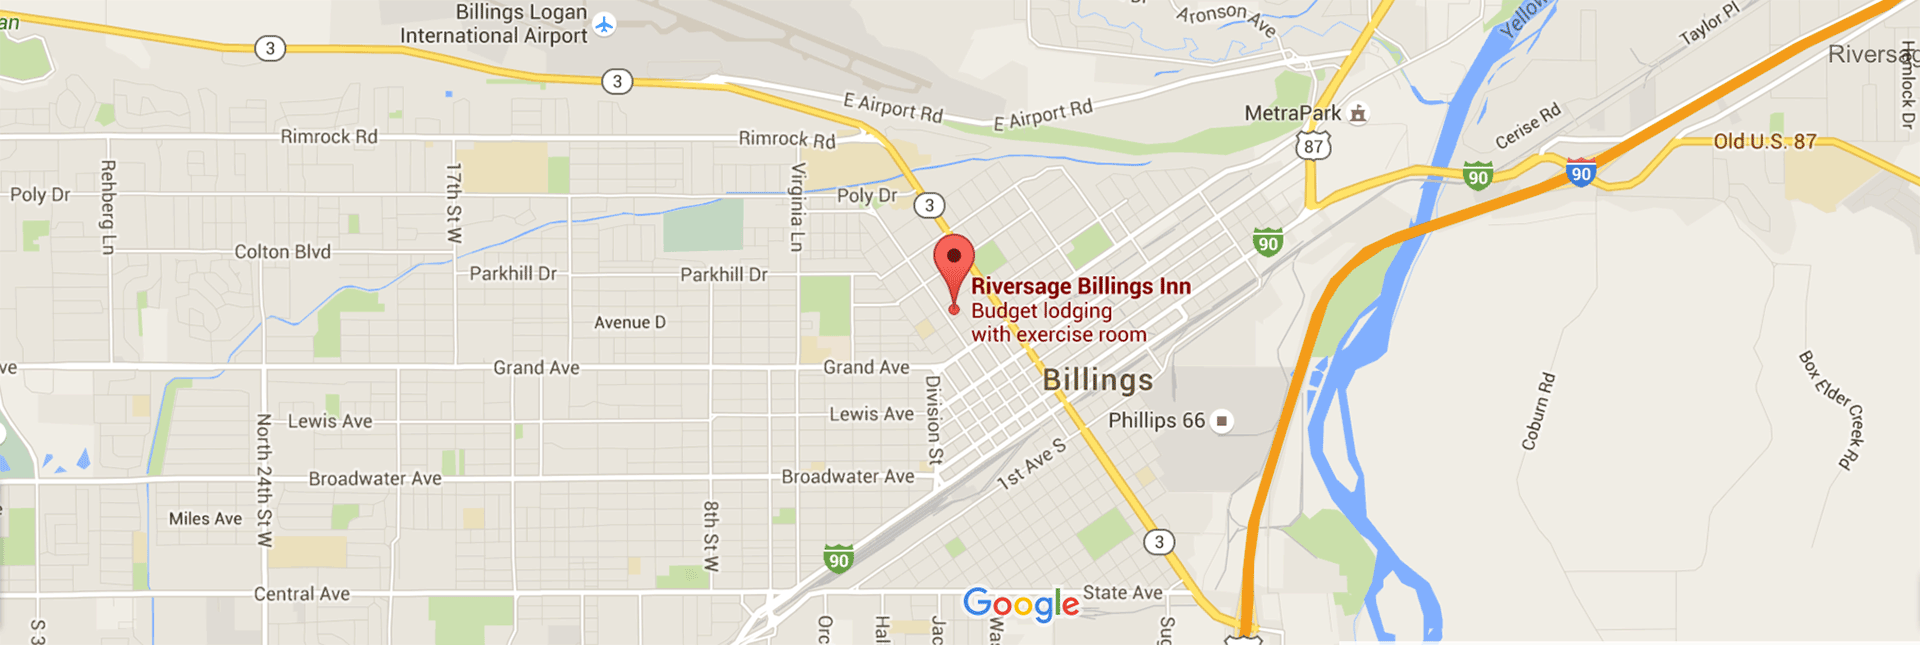 Contact Information and Location Directions for Riversage Billings